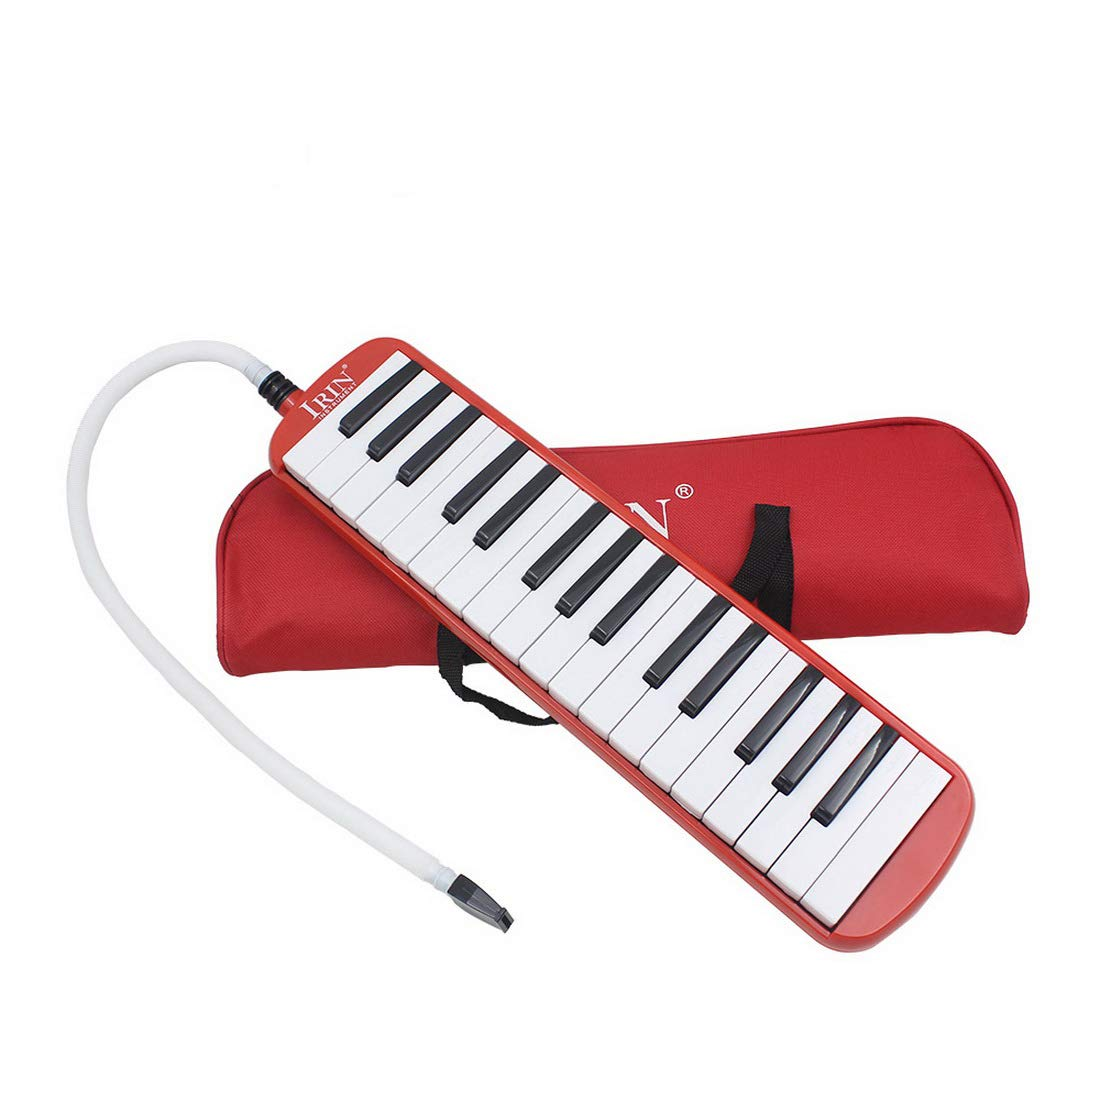 32 Piano Keys Melodica with Mouthpiece Musical Education Instrument Pianica with Bag for Kids Beginner Gift